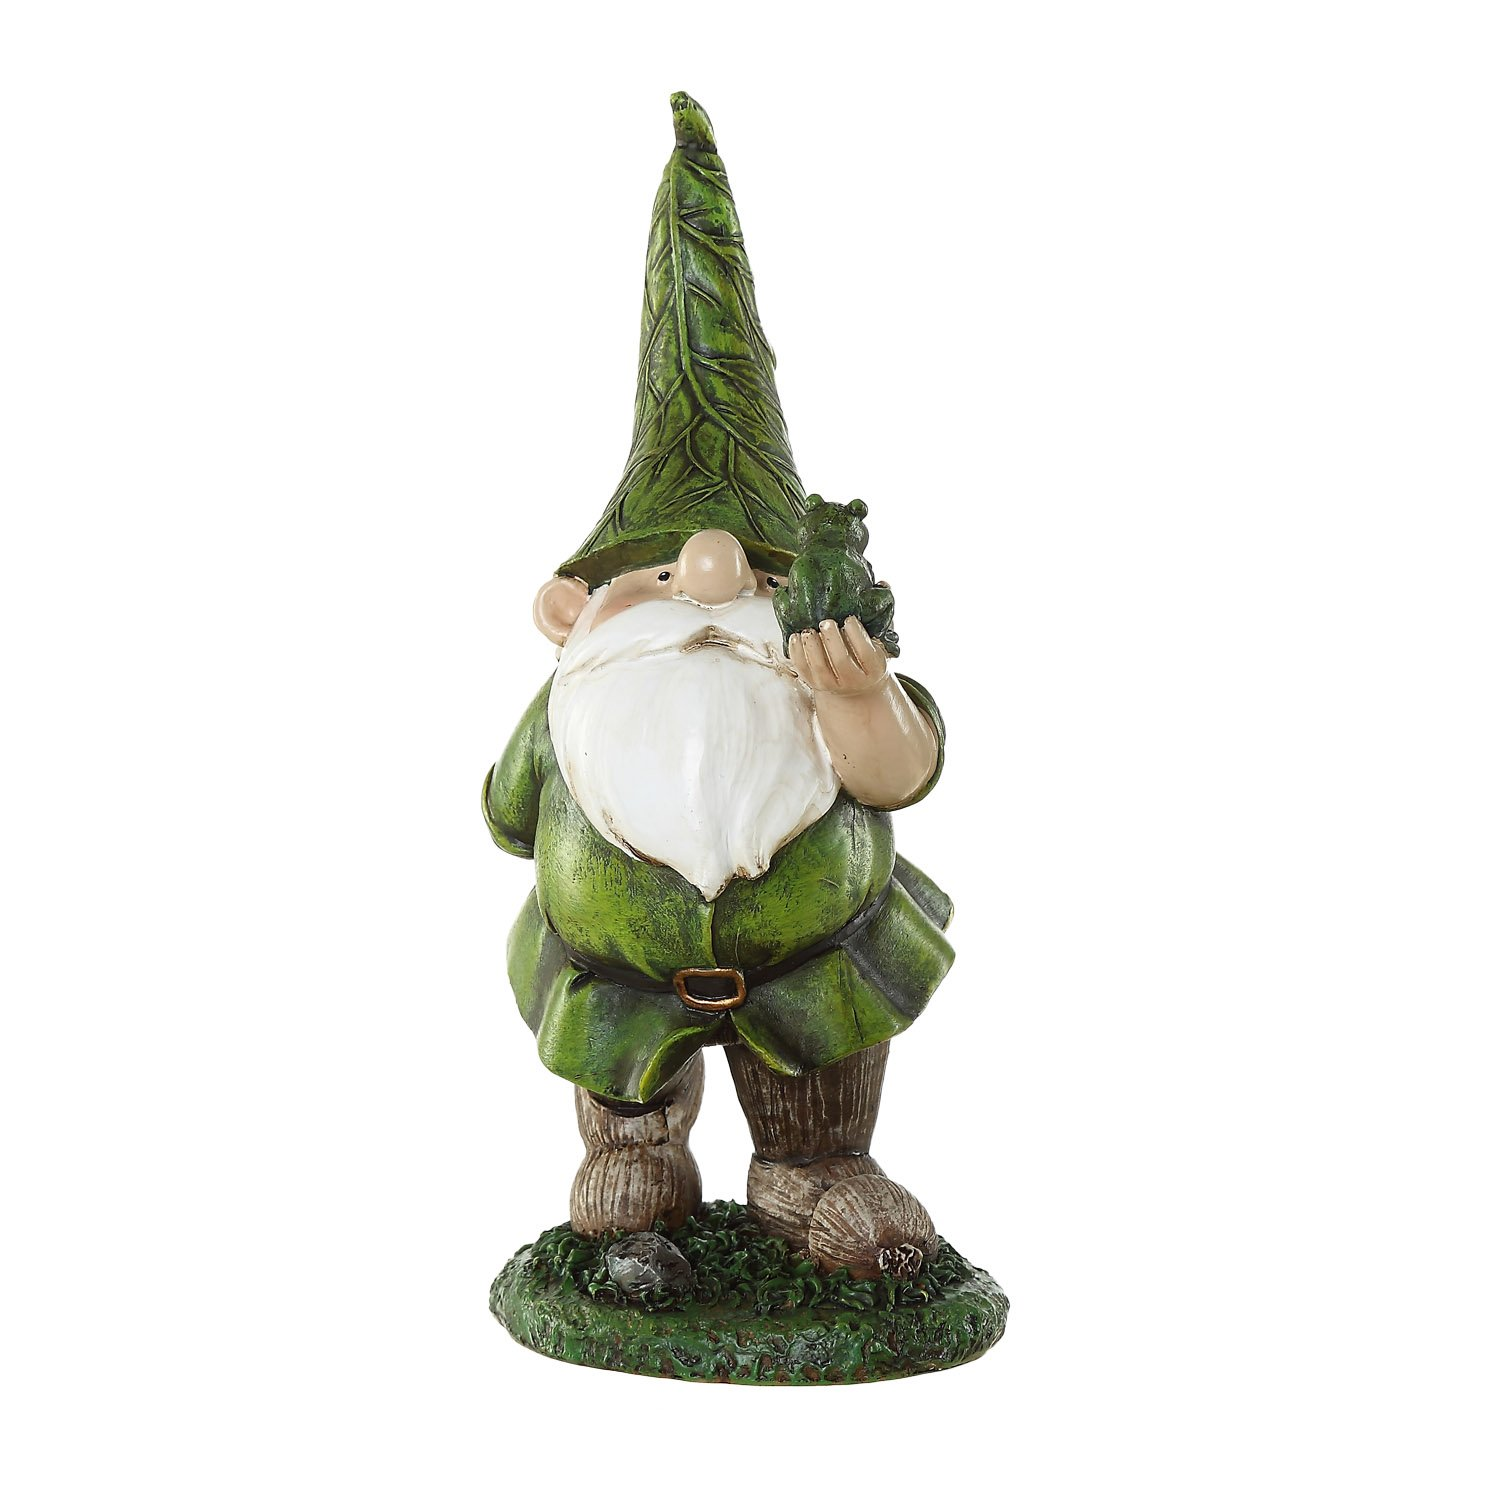 Ivy Home Resin Outdoor Garden Decorative Statuary,Gnome with Frog